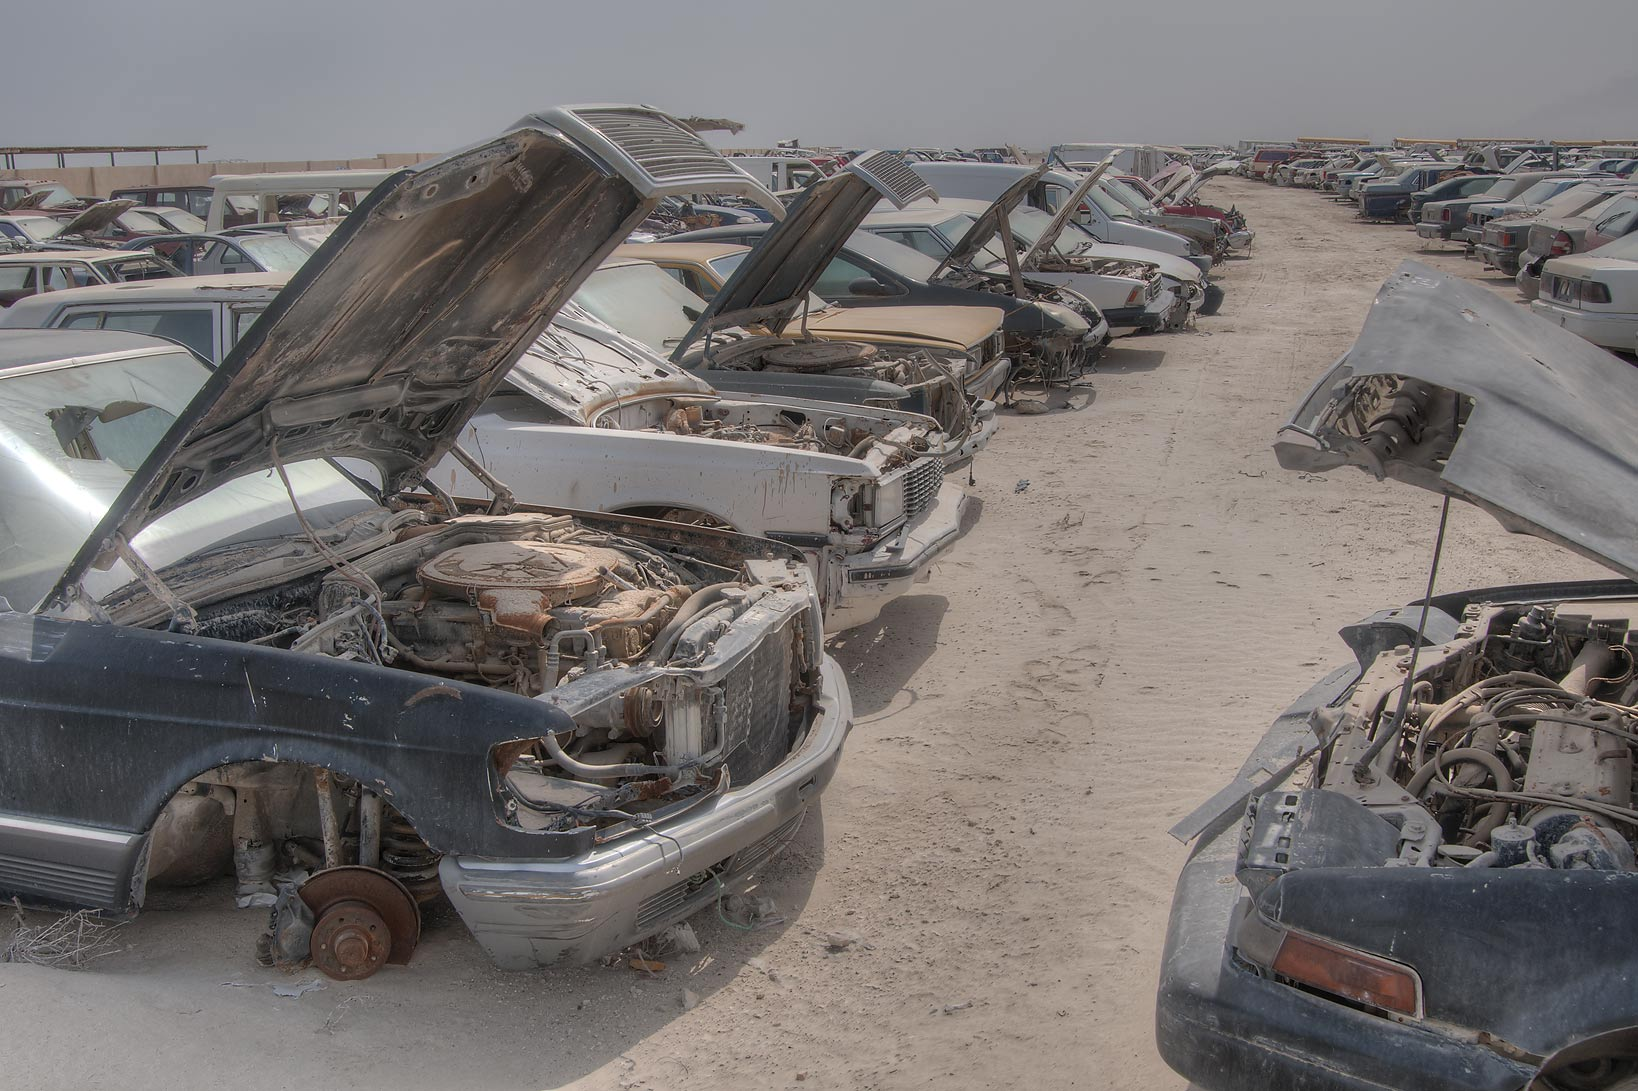 Car junkyard north of Mesaieed (Umm Said). Qatar